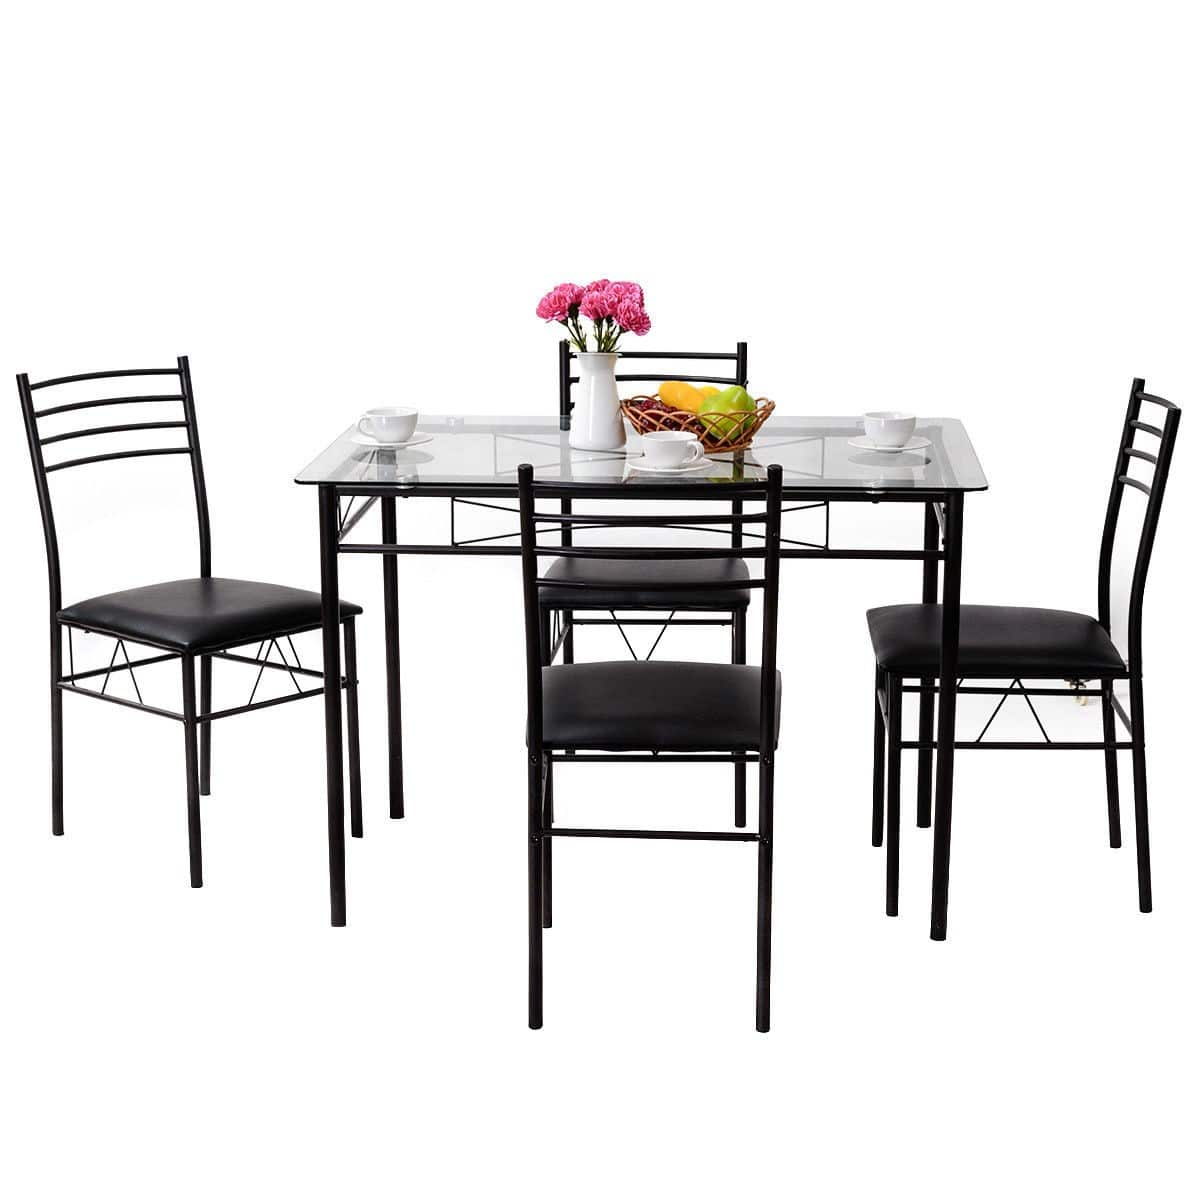 Costway 5-Piece Dining Table & Upholstered Chairs Set $99.95 + Free Shipping